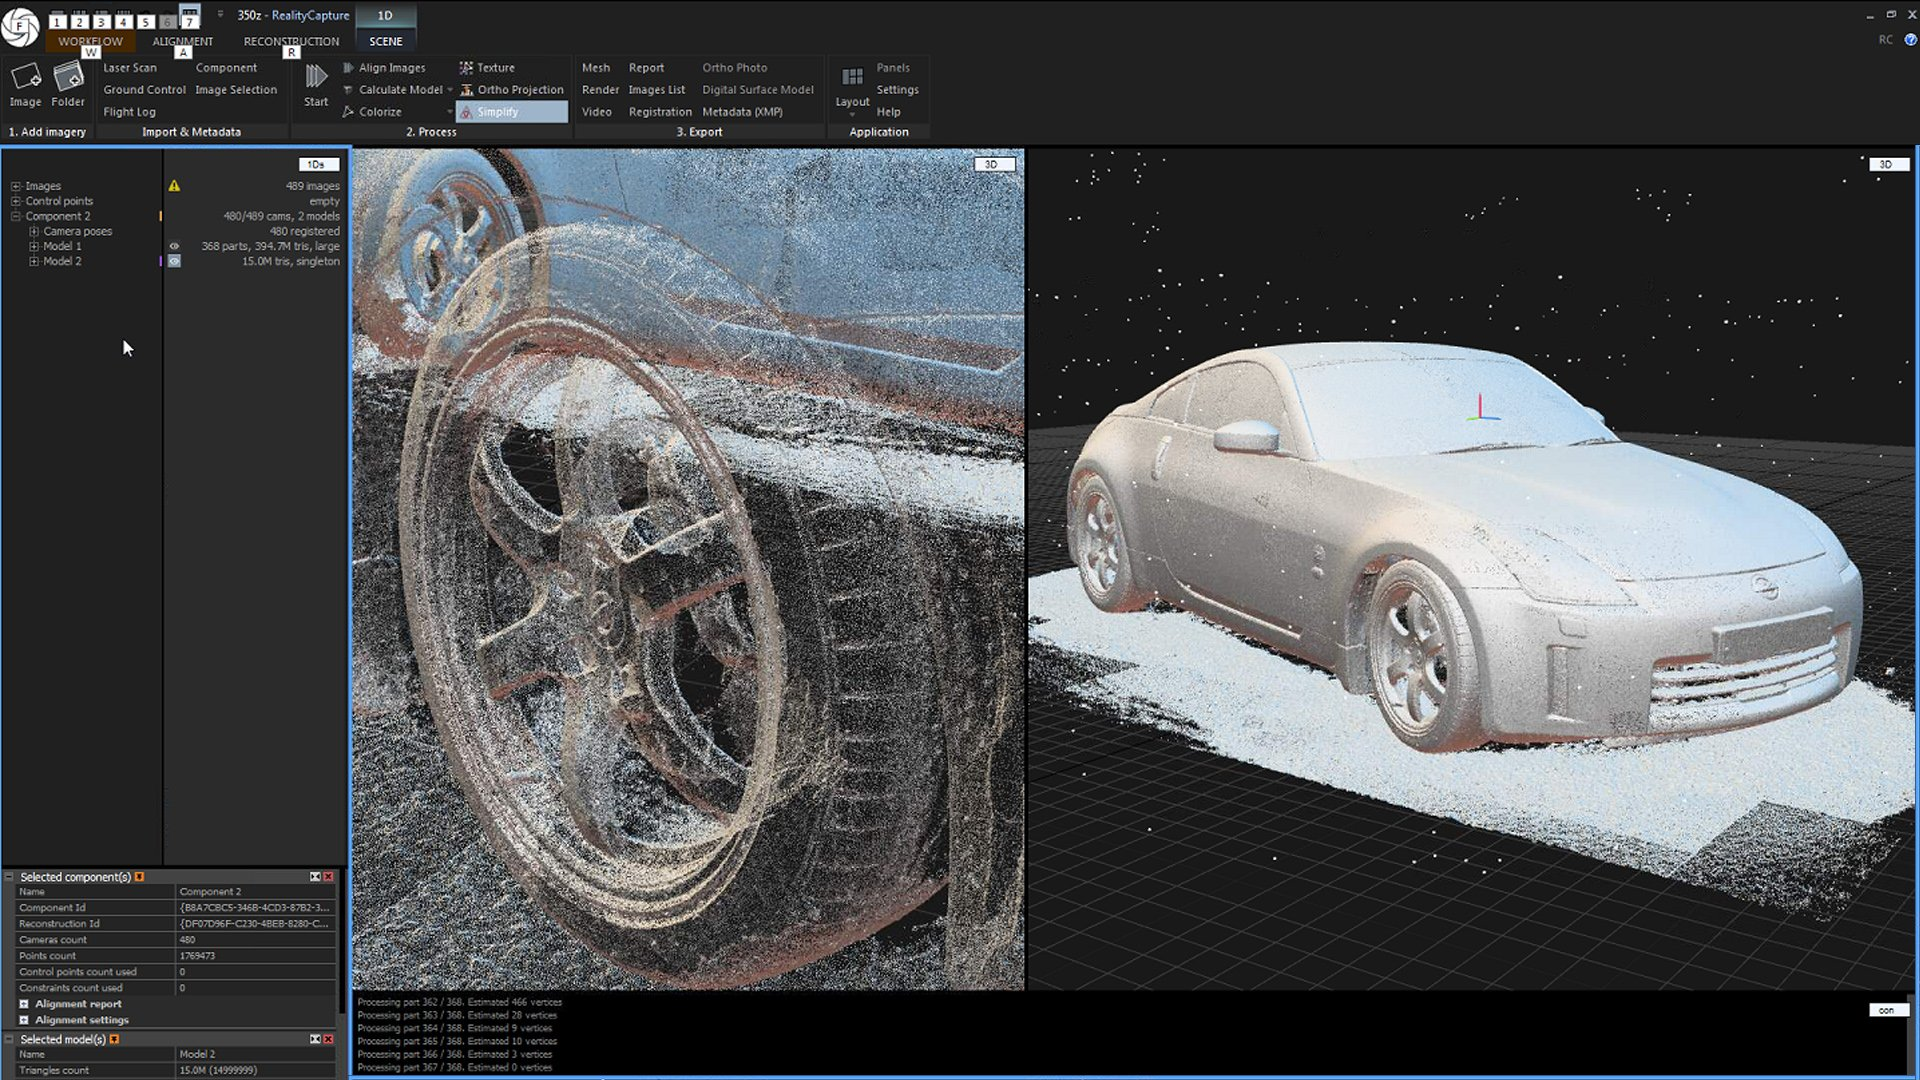 3D Scanning Cars With Photogrammetry